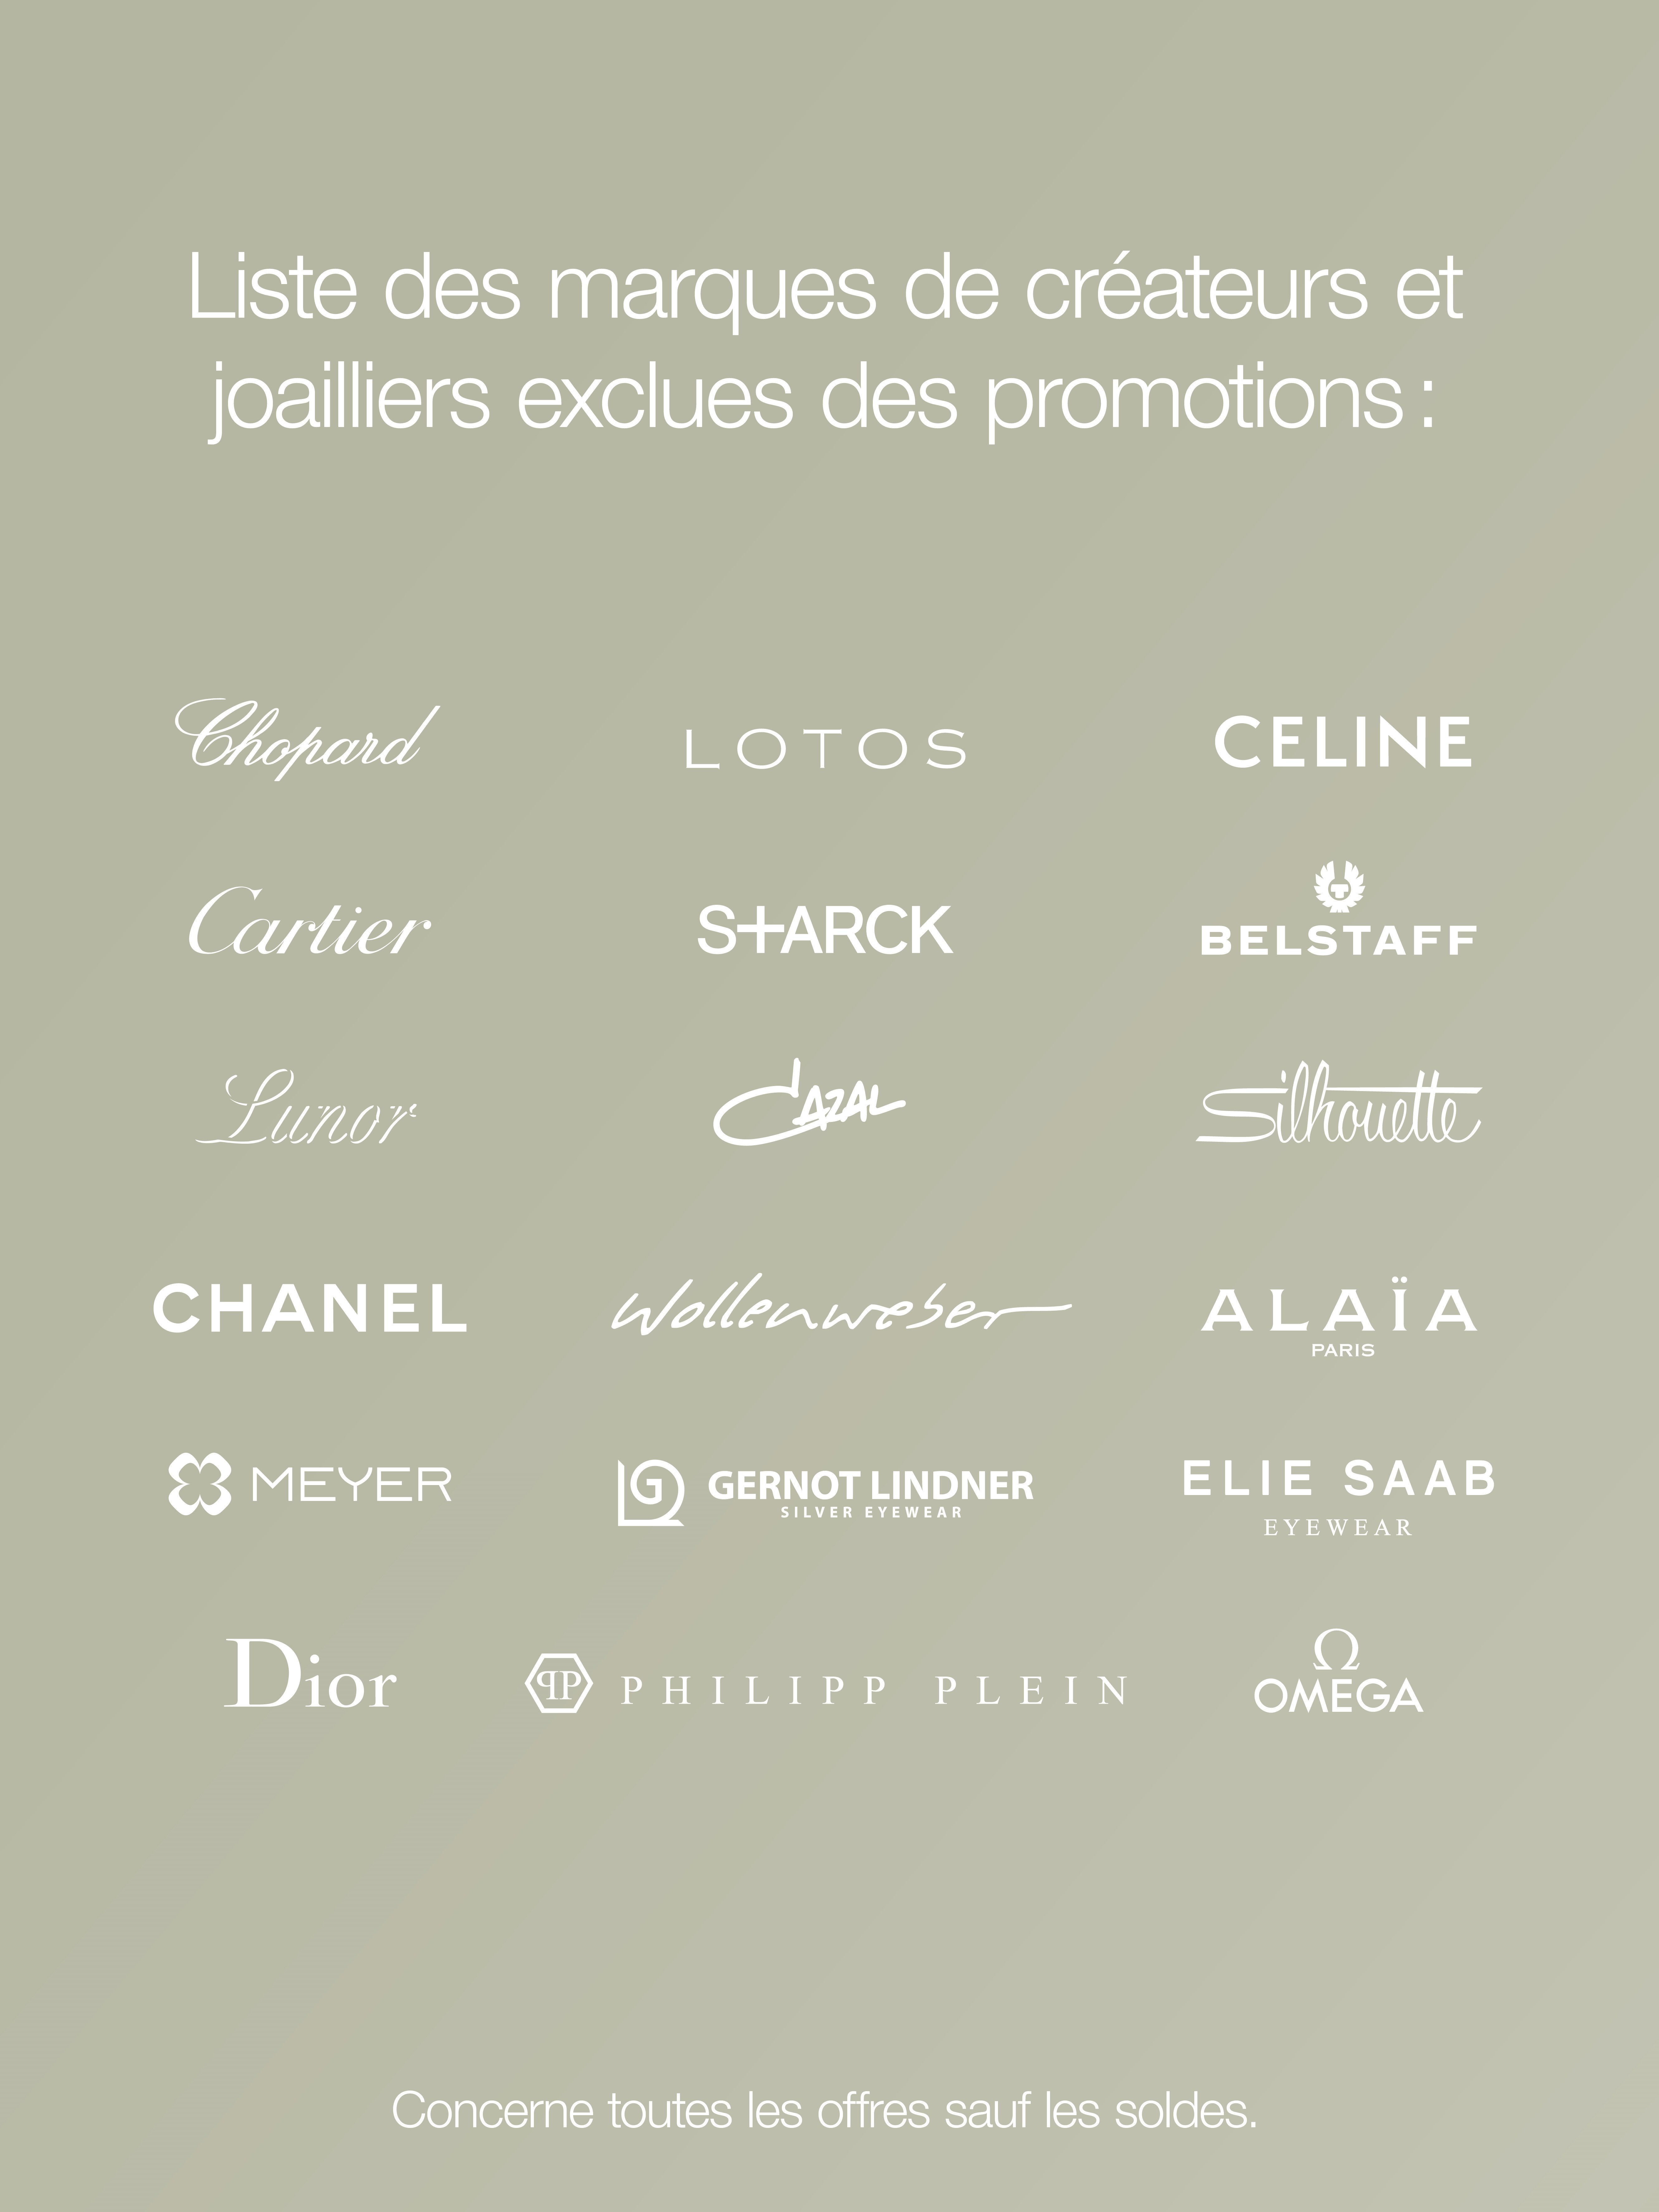 Liste marques exclues